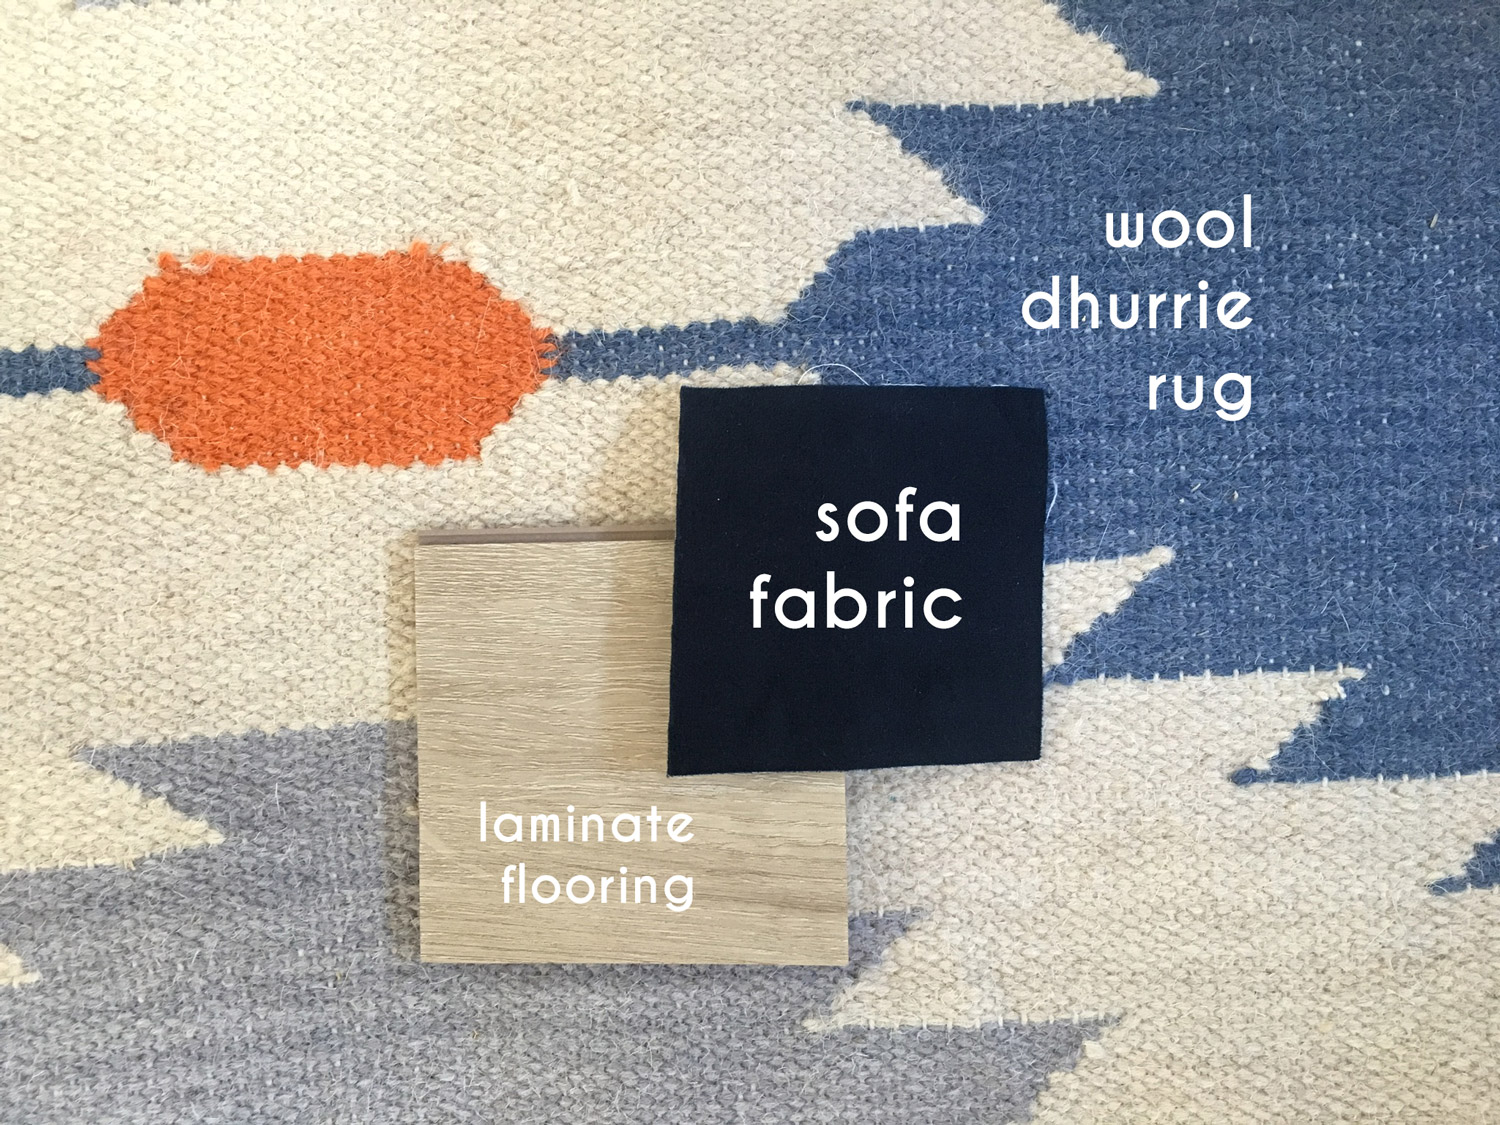 Guest house interior decor samples - flooring, rug and sofa fabric - That Homebird Life Blog